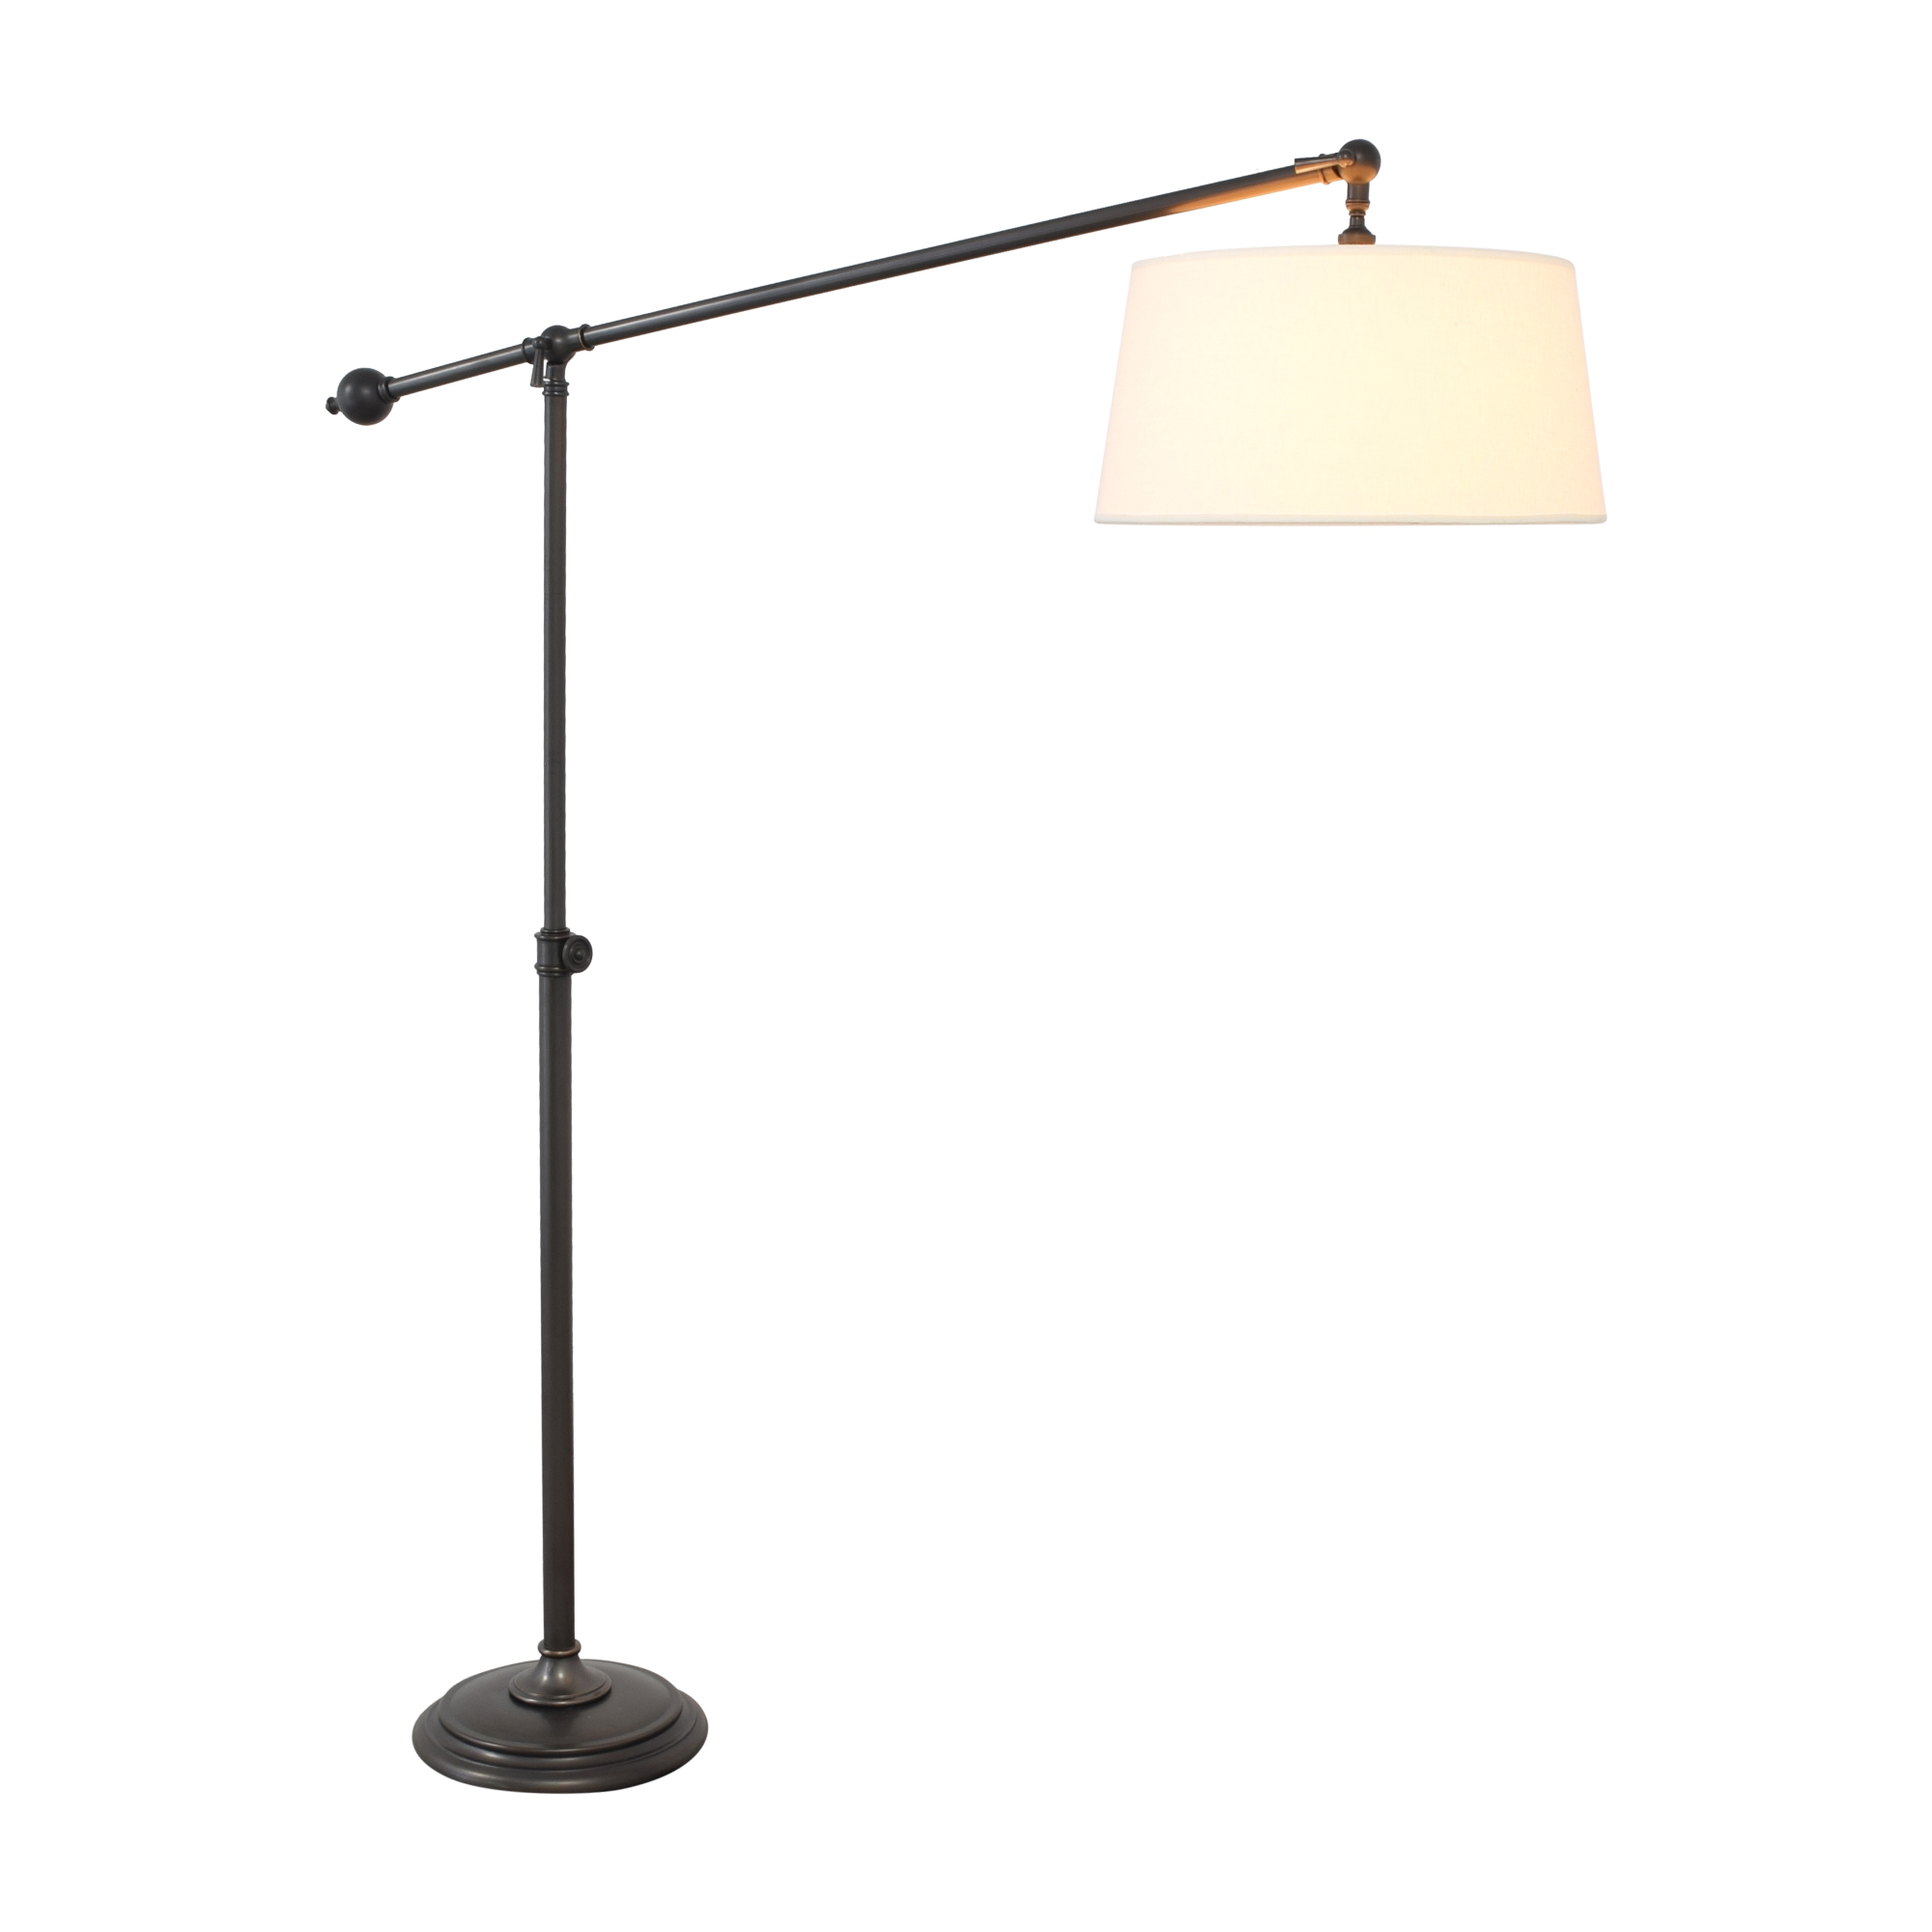 shop Pottery Barn Pottery Barn Swing-Arm Floor Lamp online